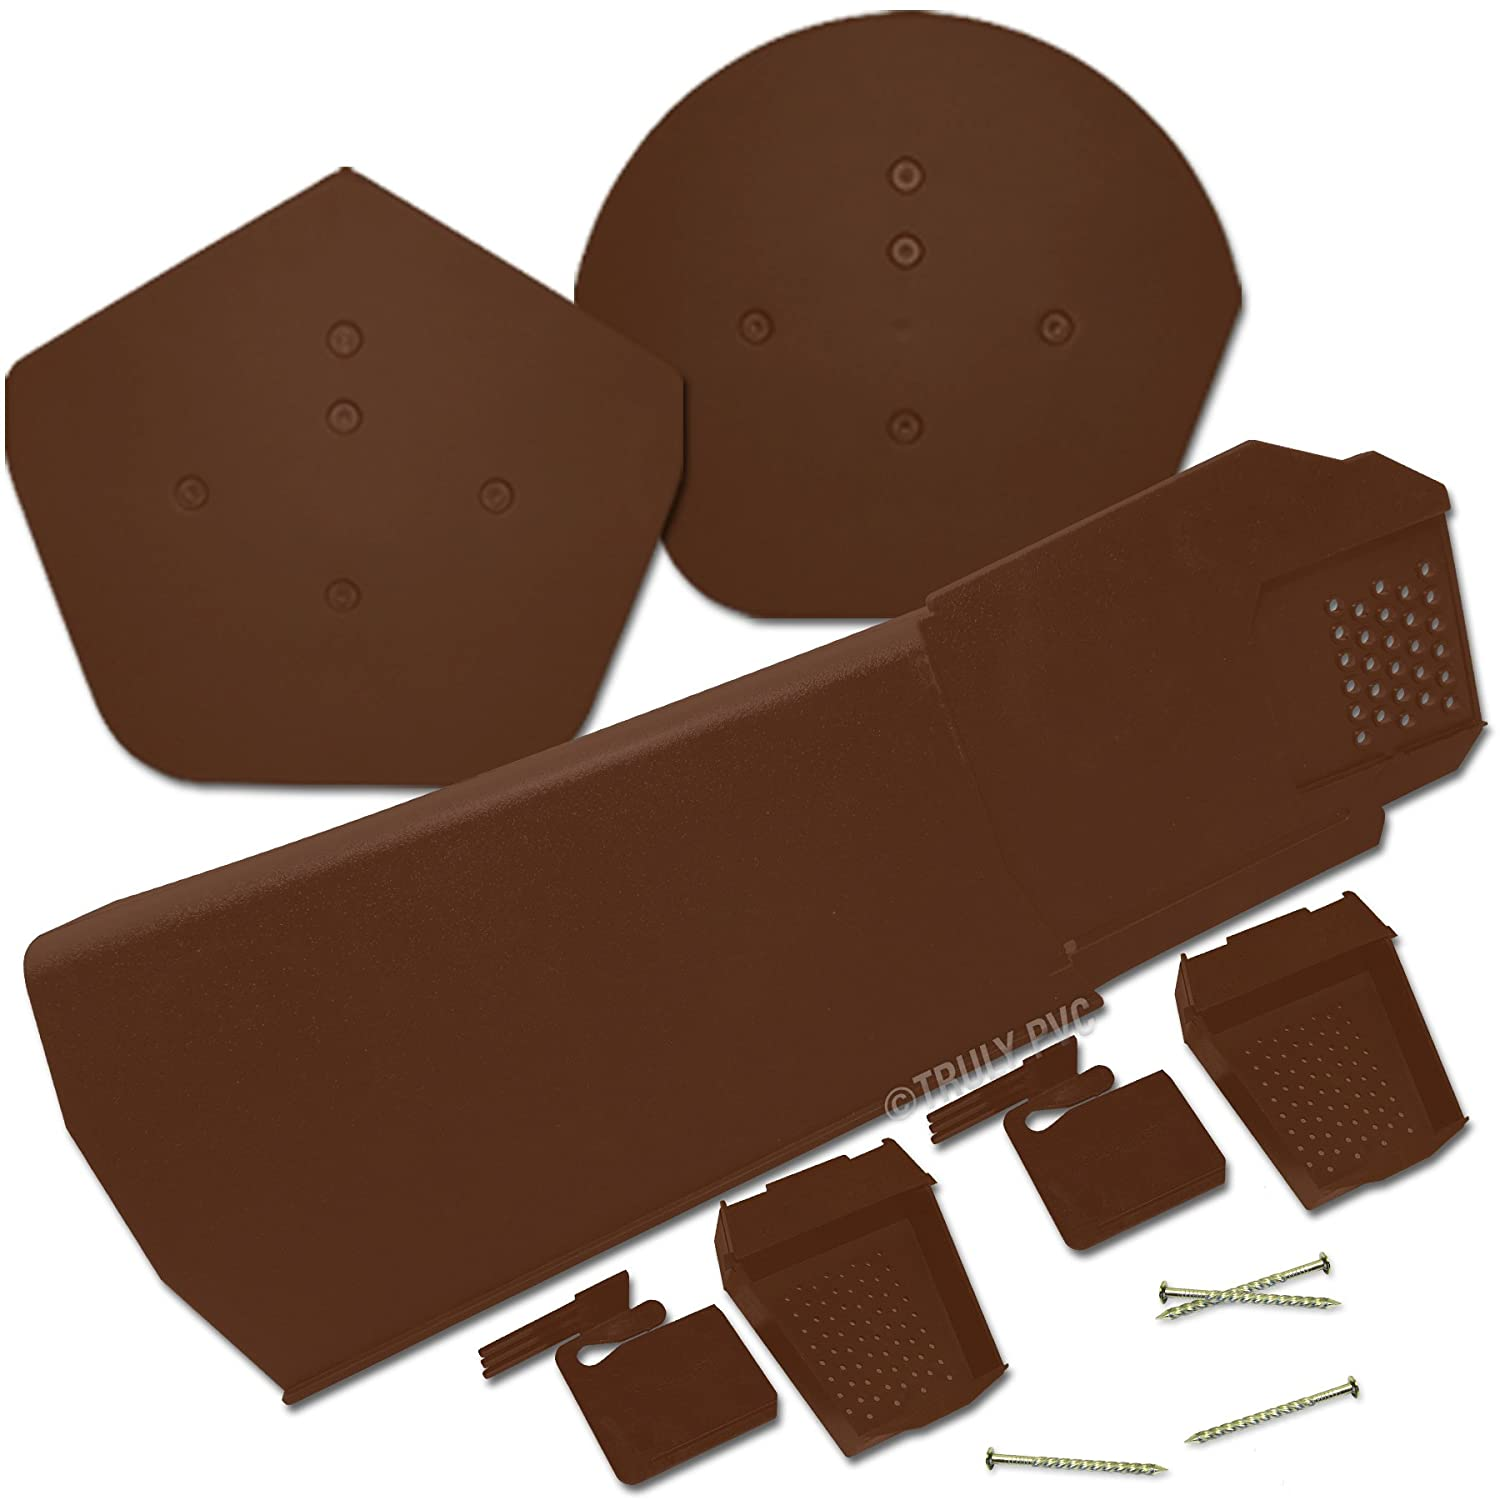 Complete Kit of 24 x Brown Klober Uni-Click Dry Verge Units + Domed Apex End Closure + Starter Pack - Kit sizes 10 to 40 Available